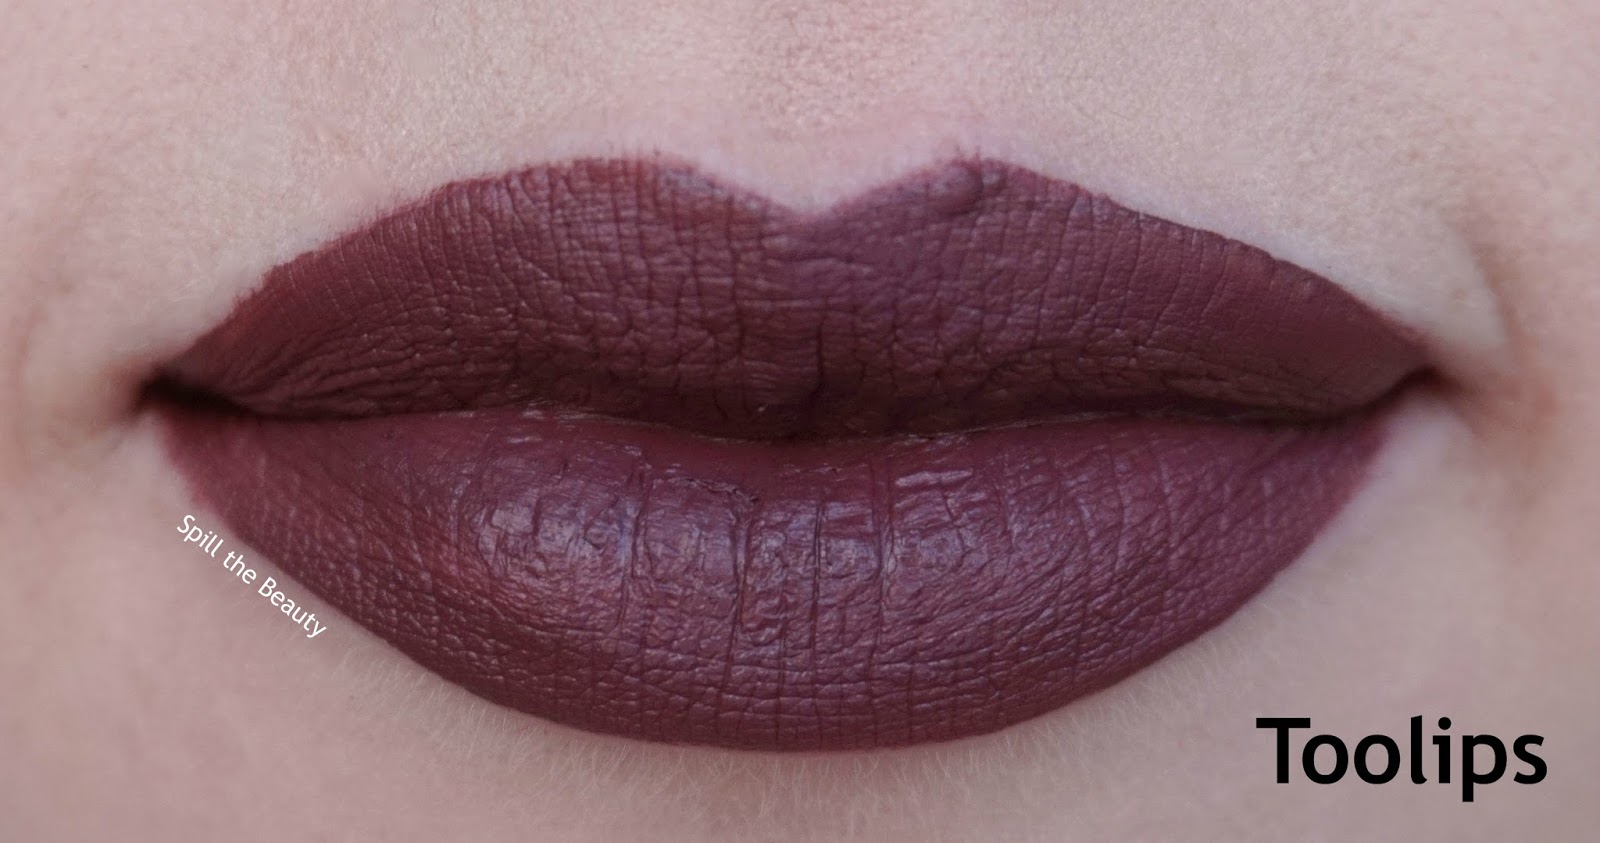 colourpop ultra satin lips faves swatches 3 toolips - lips